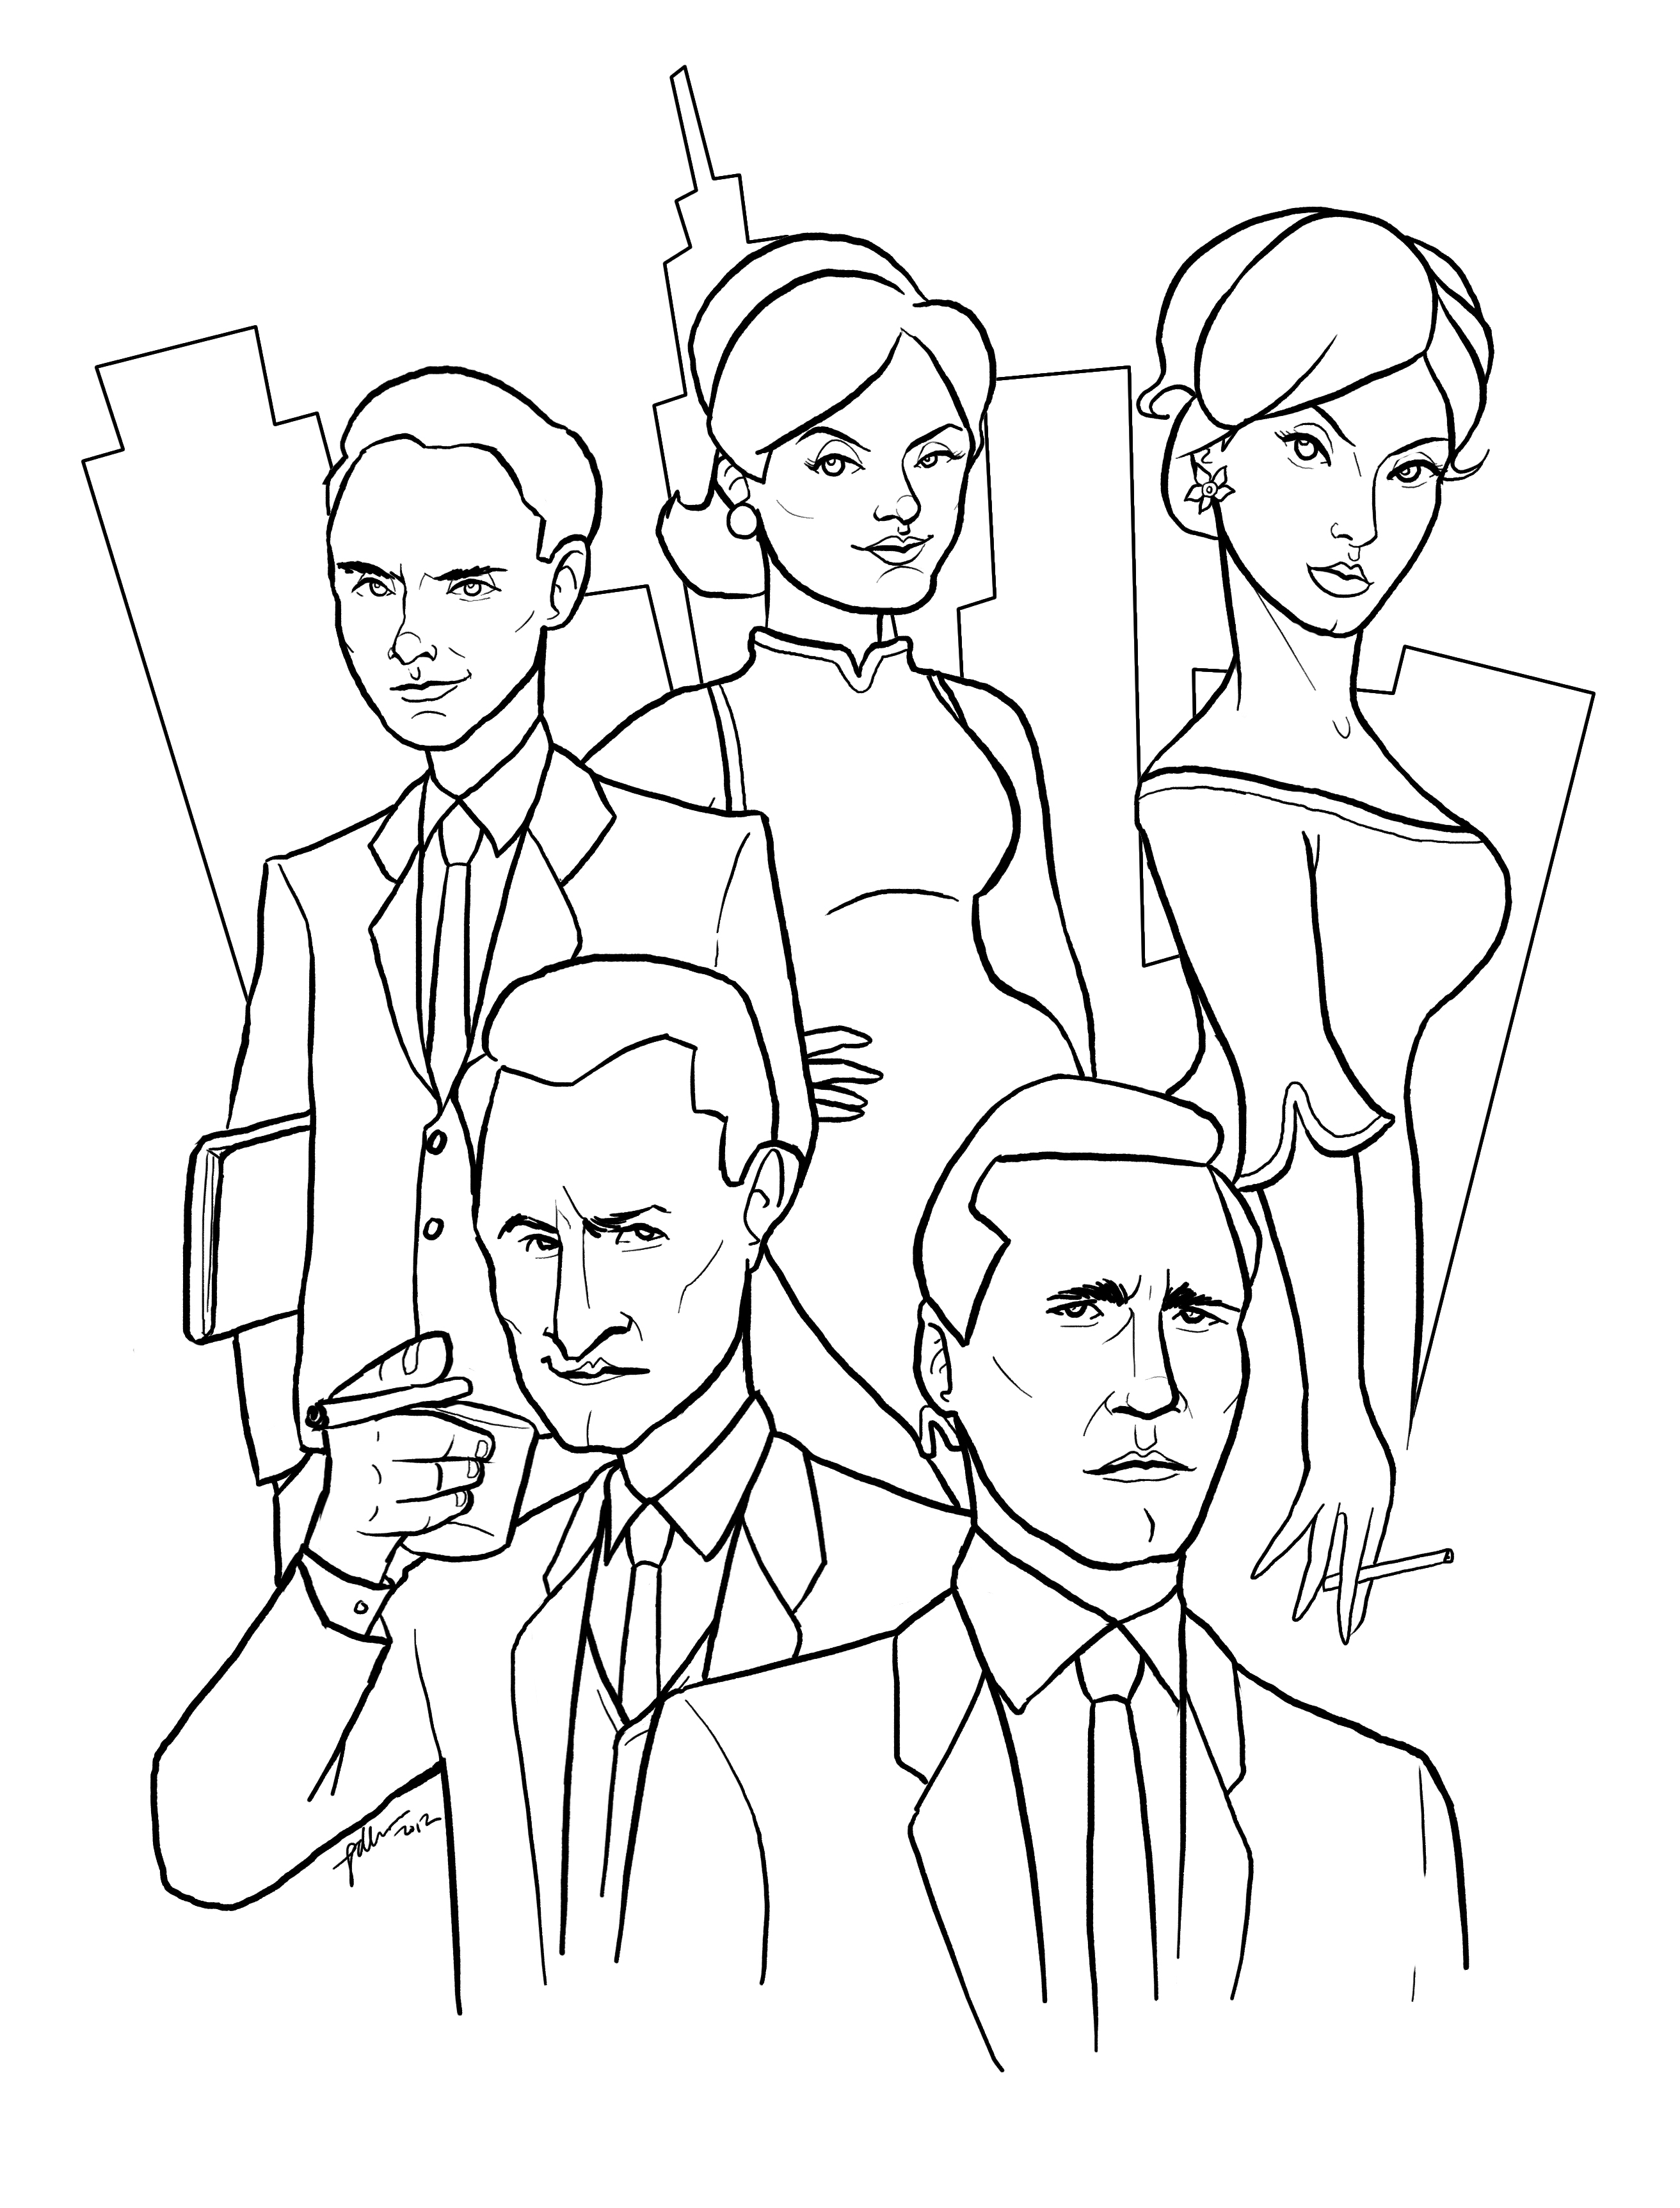 2625x3450 Coloring Pages For Men Coloring Pages For Men Coloring Pages Jingo